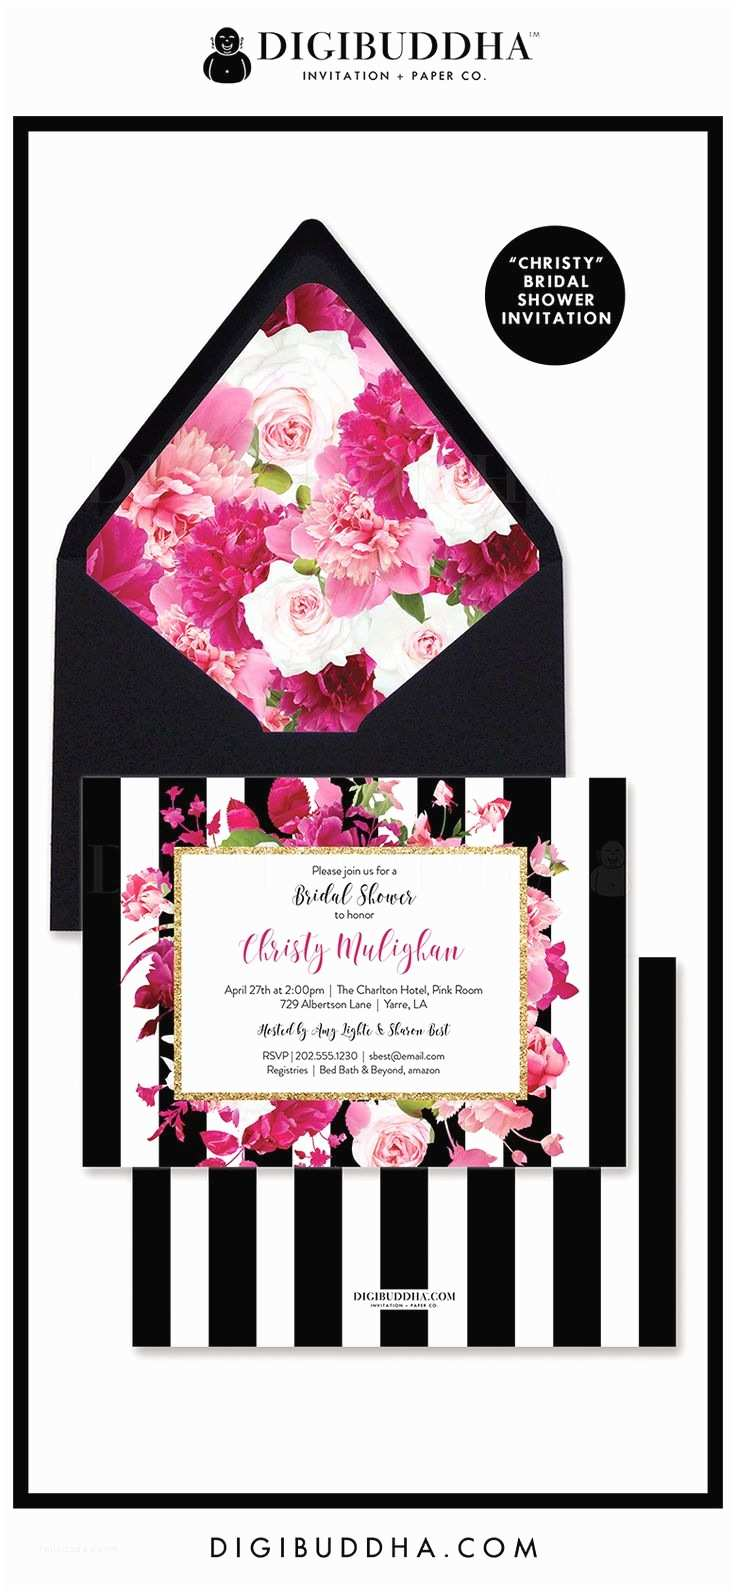 Cool Party Invitations Luxurious Cool Party Invitations Simple Modern Black and